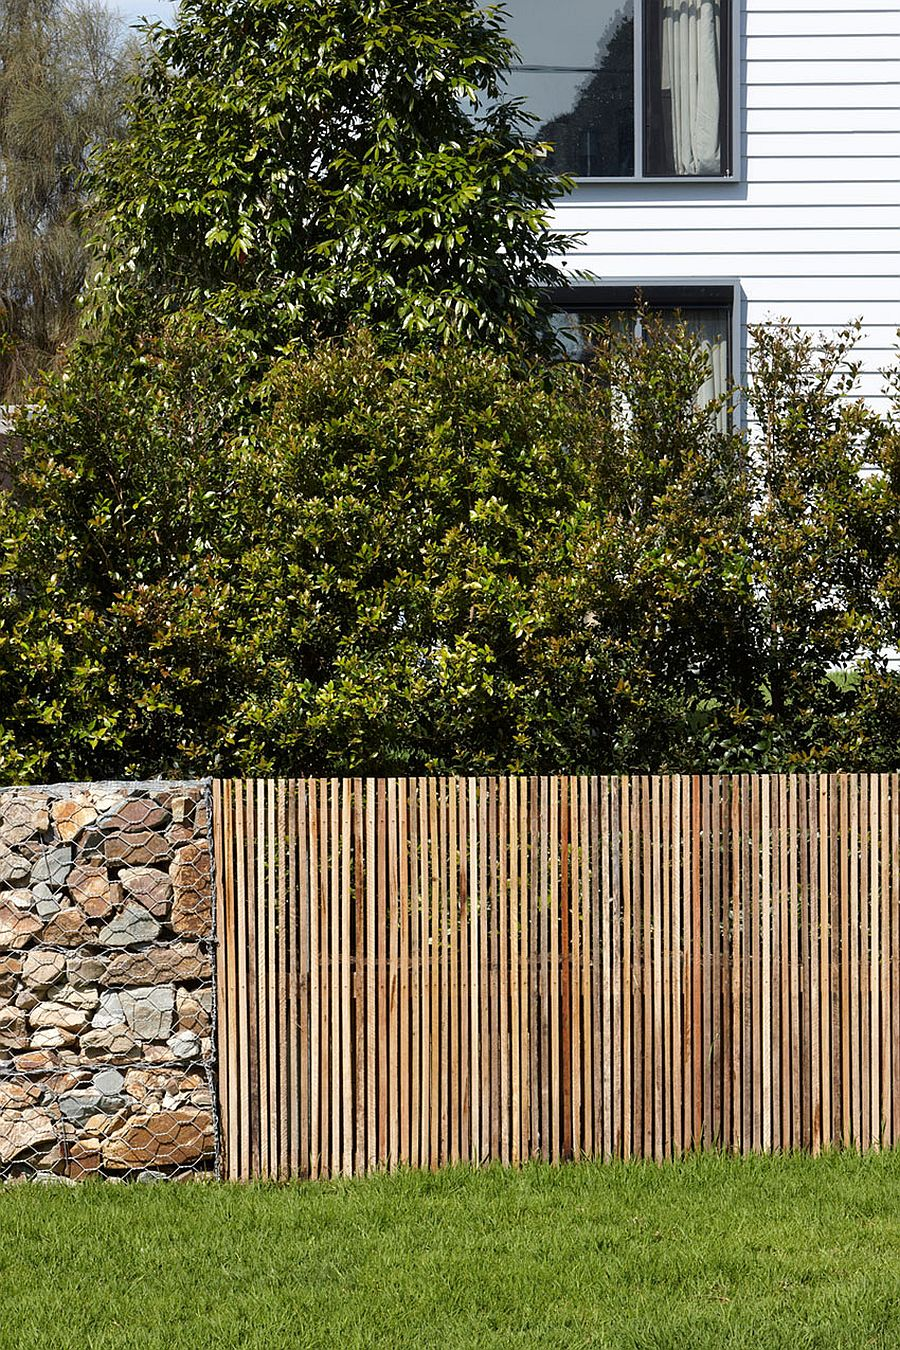 Fence around the house seems rustic and modest